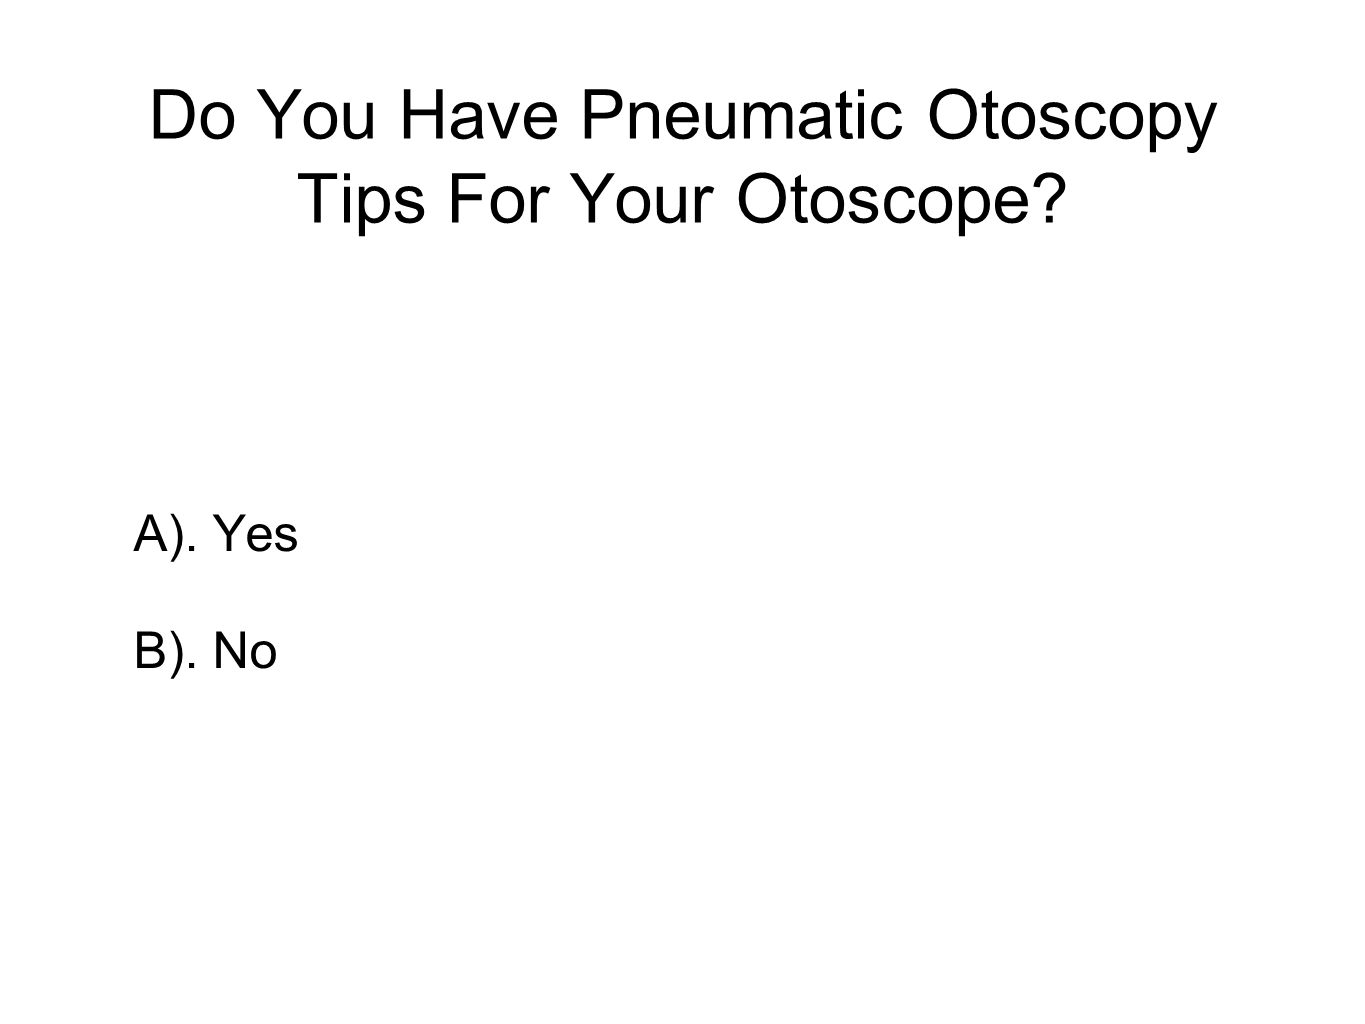 Do You Have Pneumatic Otoscopy Tips For Your Otoscope